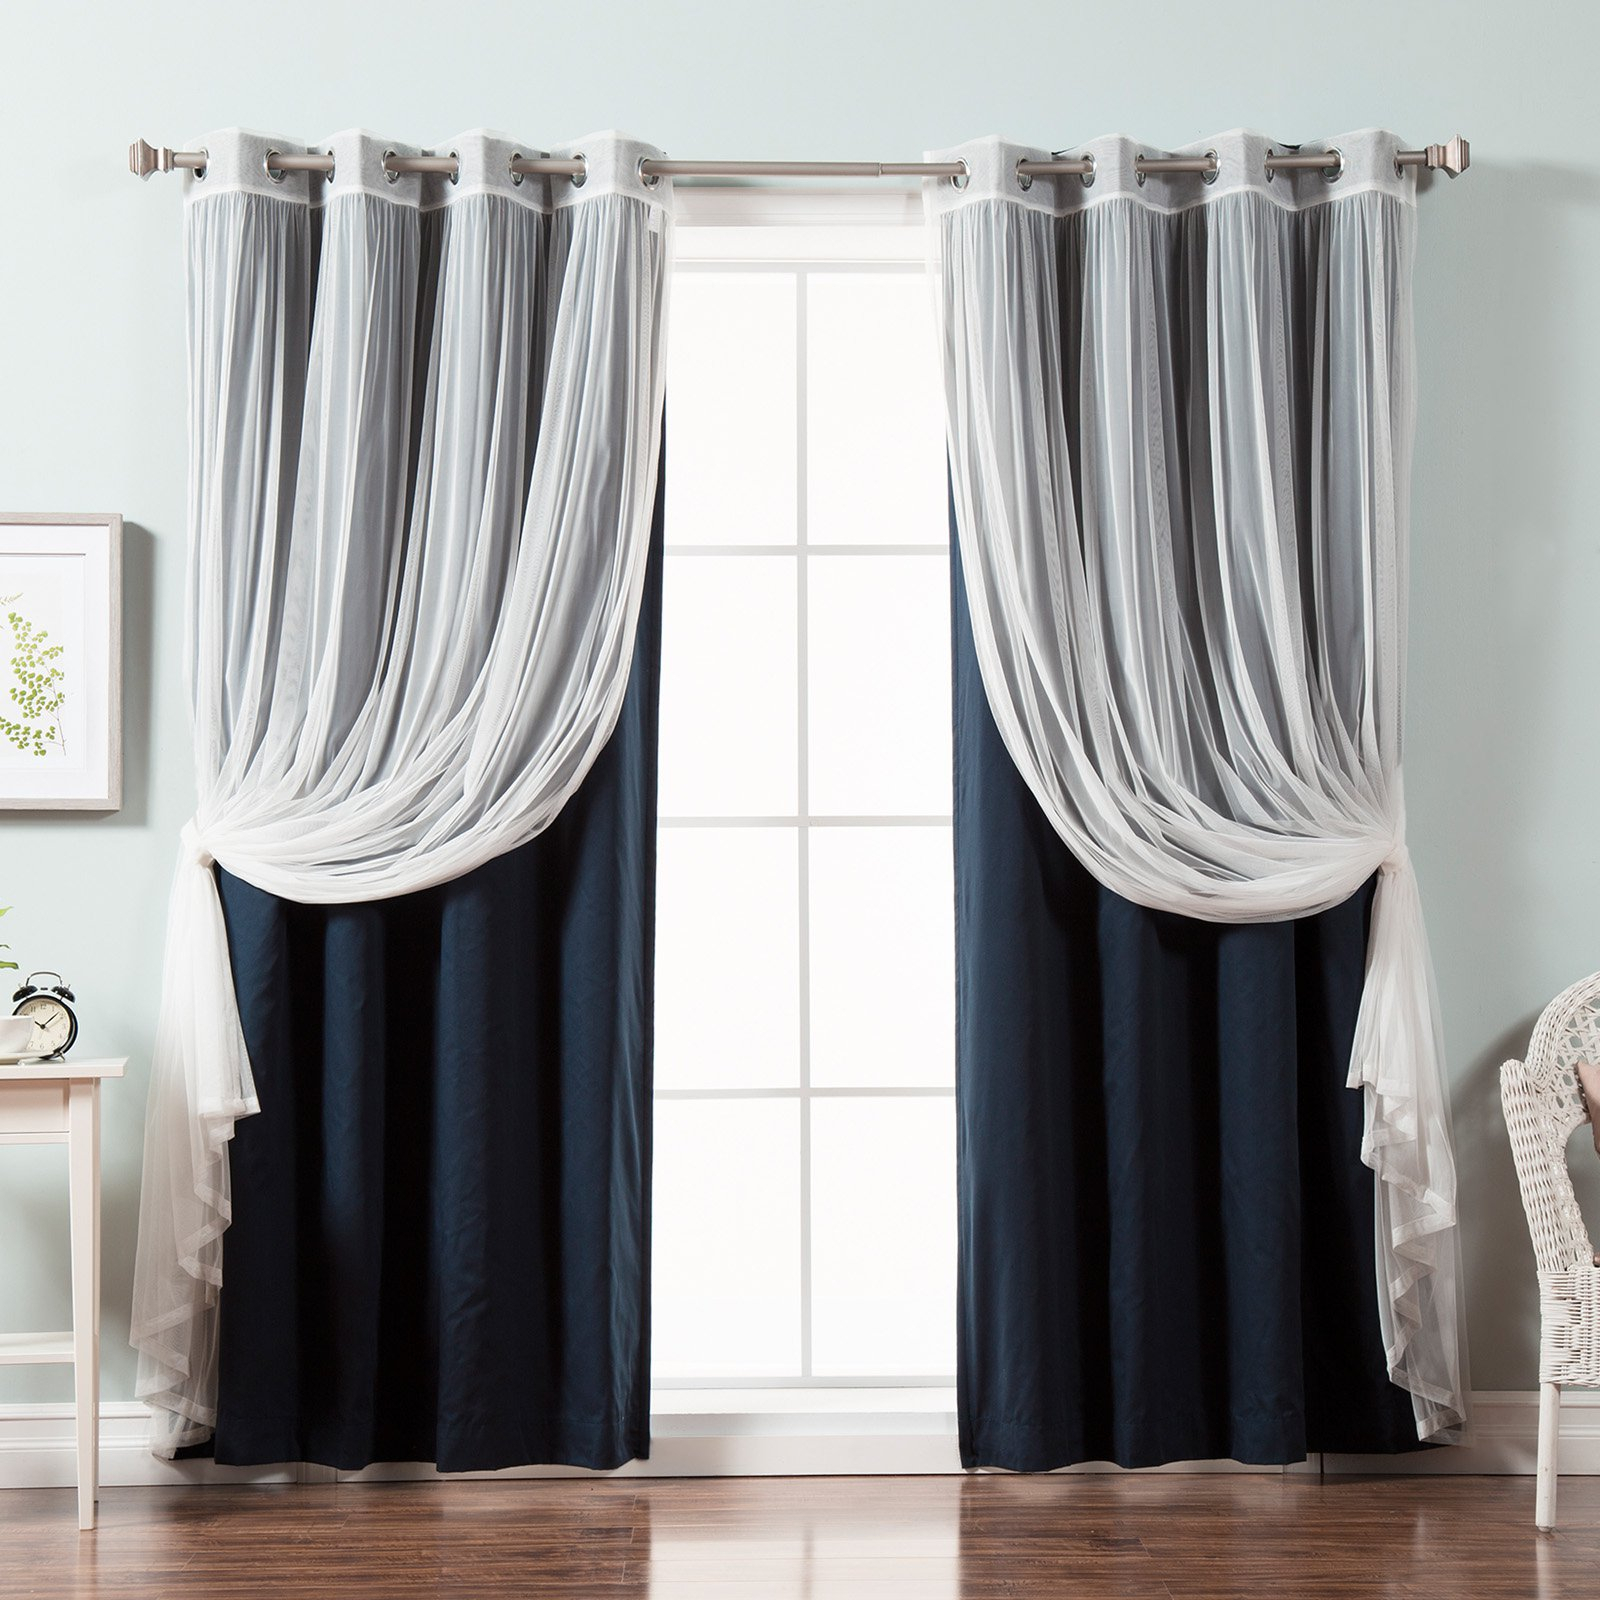 Best Home Fashion Tulle Lace And Solid Cotton Blackout Mix & Match Curtain Panels – Set Of 4 Throughout Mix And Match Blackout Tulle Lace Sheer Curtain Panel Sets (View 8 of 20)